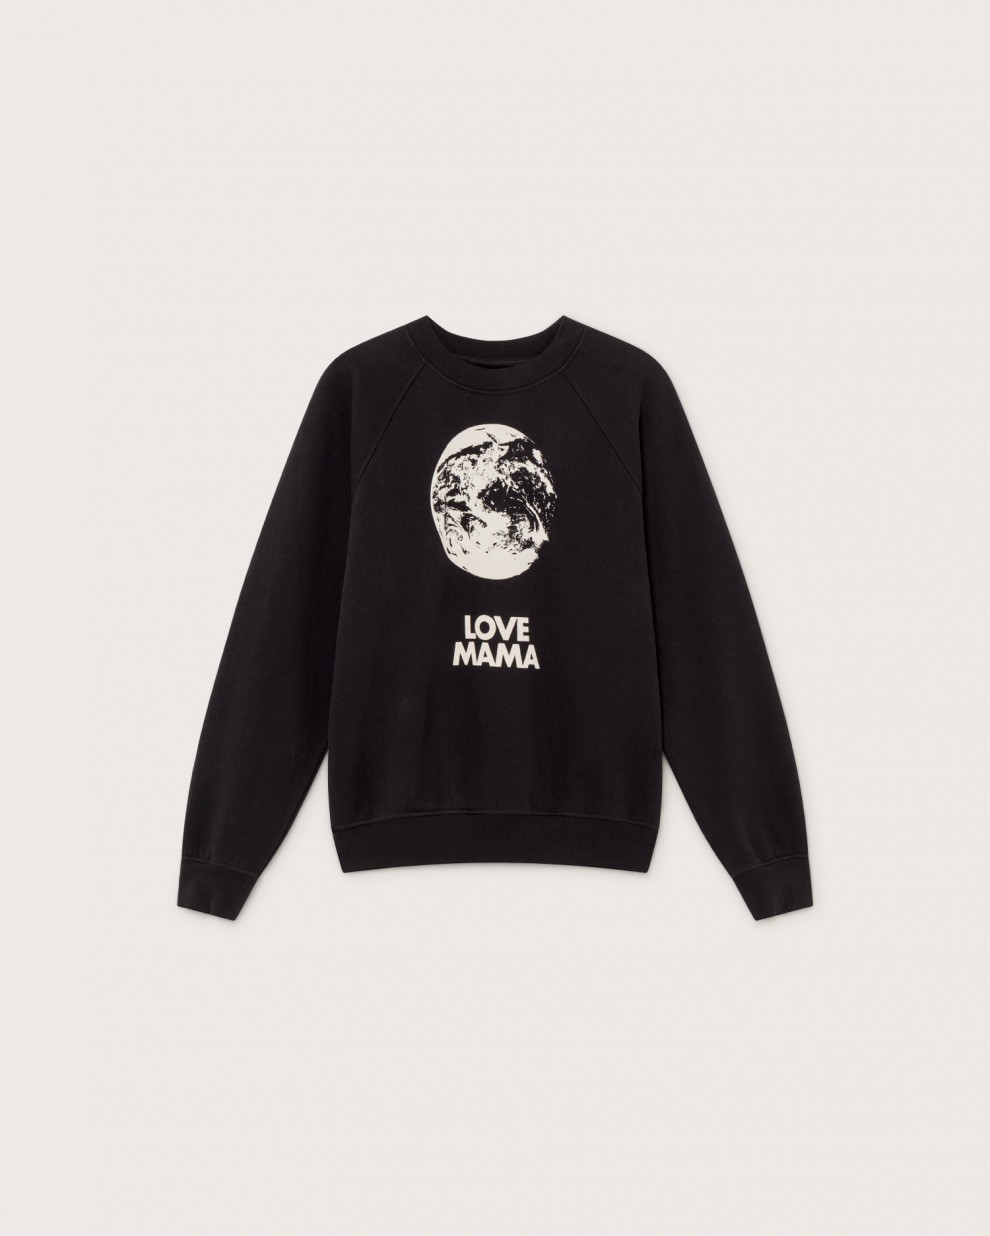 LOVE MAMA SWEATSHIRT